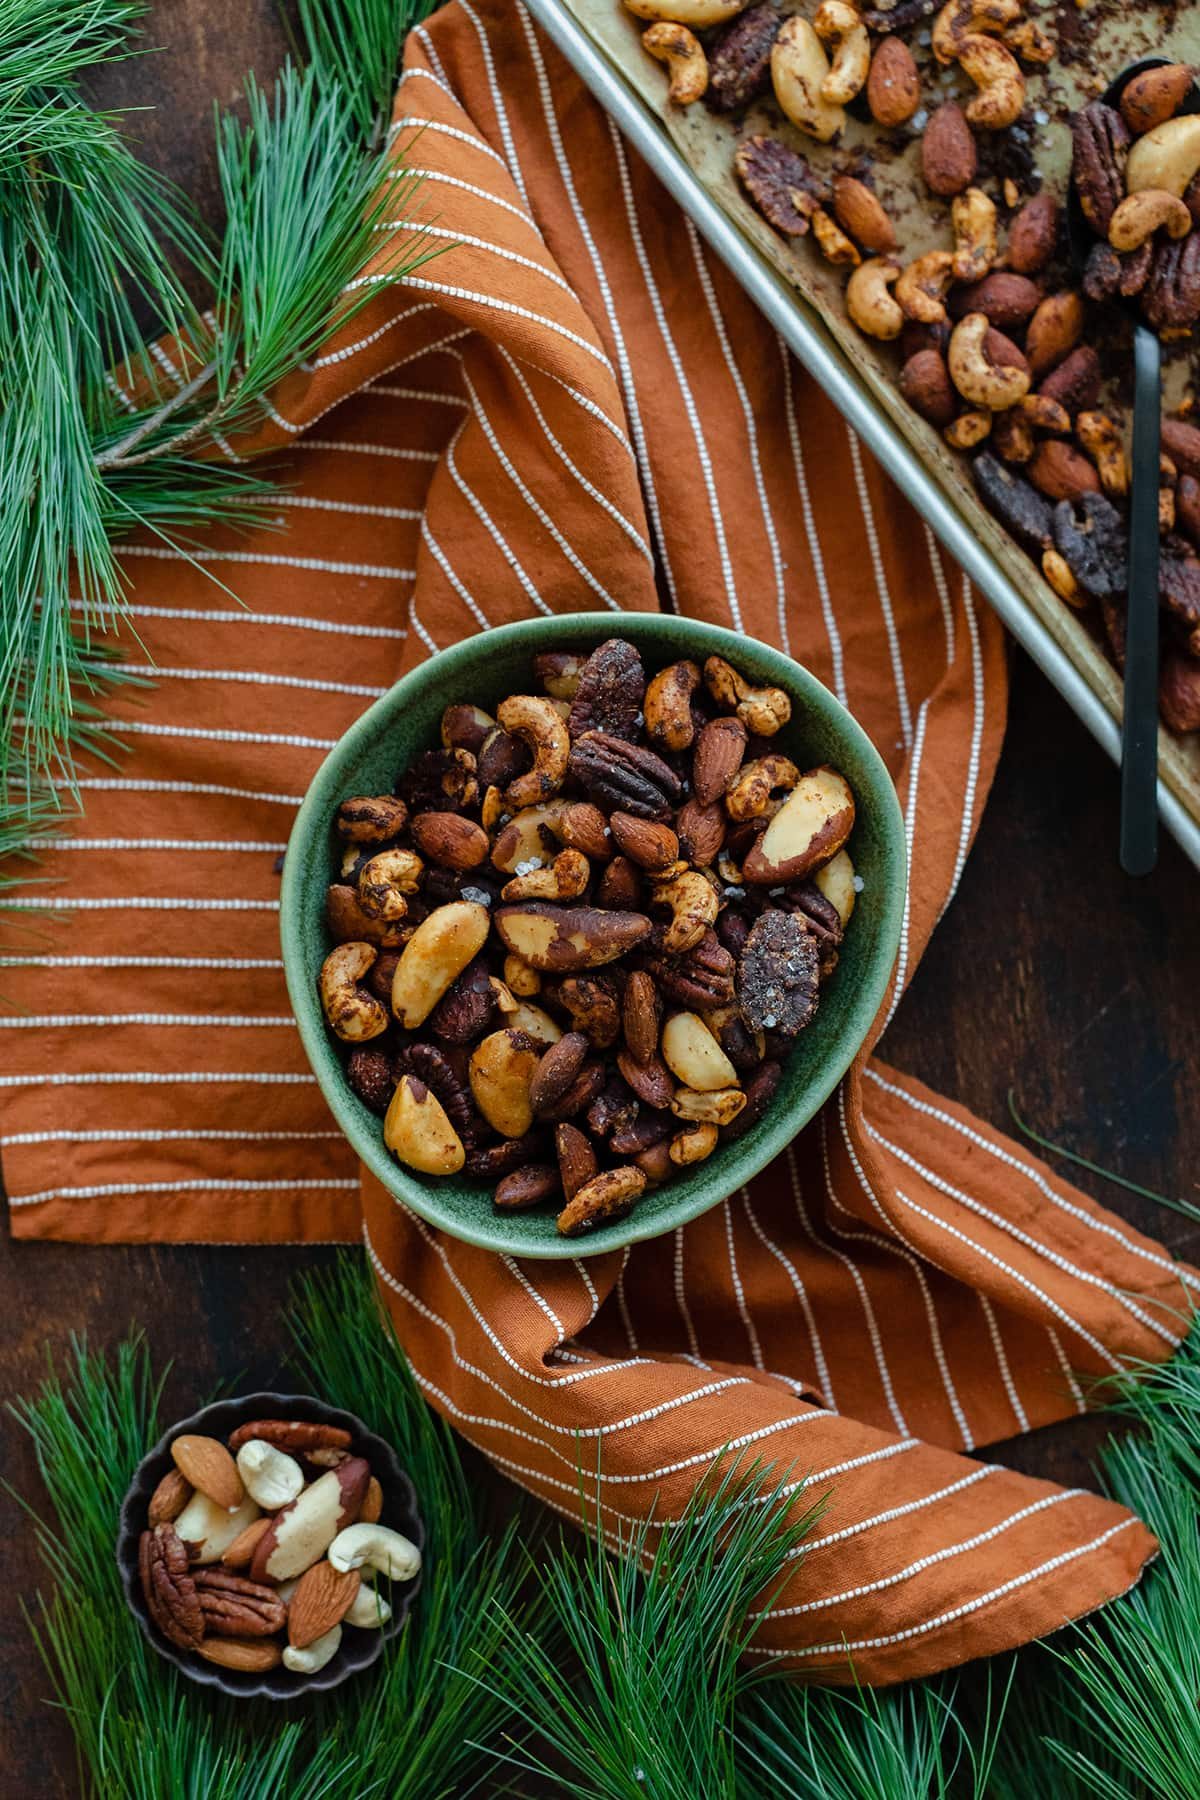 Mixed roasted nuts in a green bowl on an orange and white striped napkin. Pine needles peeking into the shot in the top left, bottom left, and bottom right corners. Baking sheet with more nuts in the top right corner.